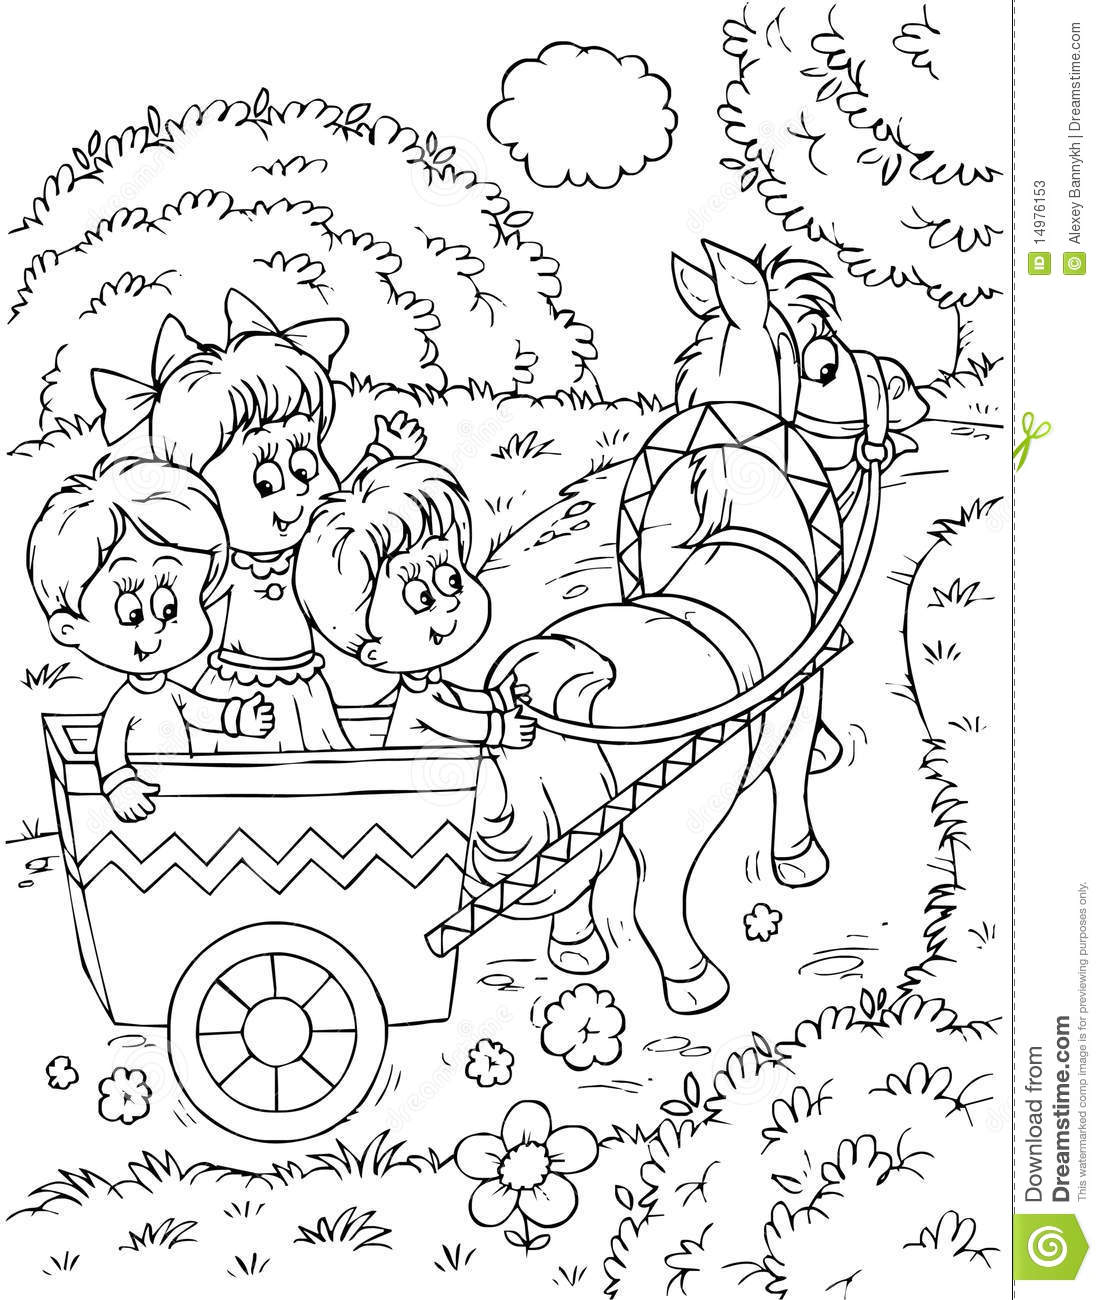 horse and carriage coloring pages horse drawn carriage drawing at getdrawings free download carriage pages coloring horse and